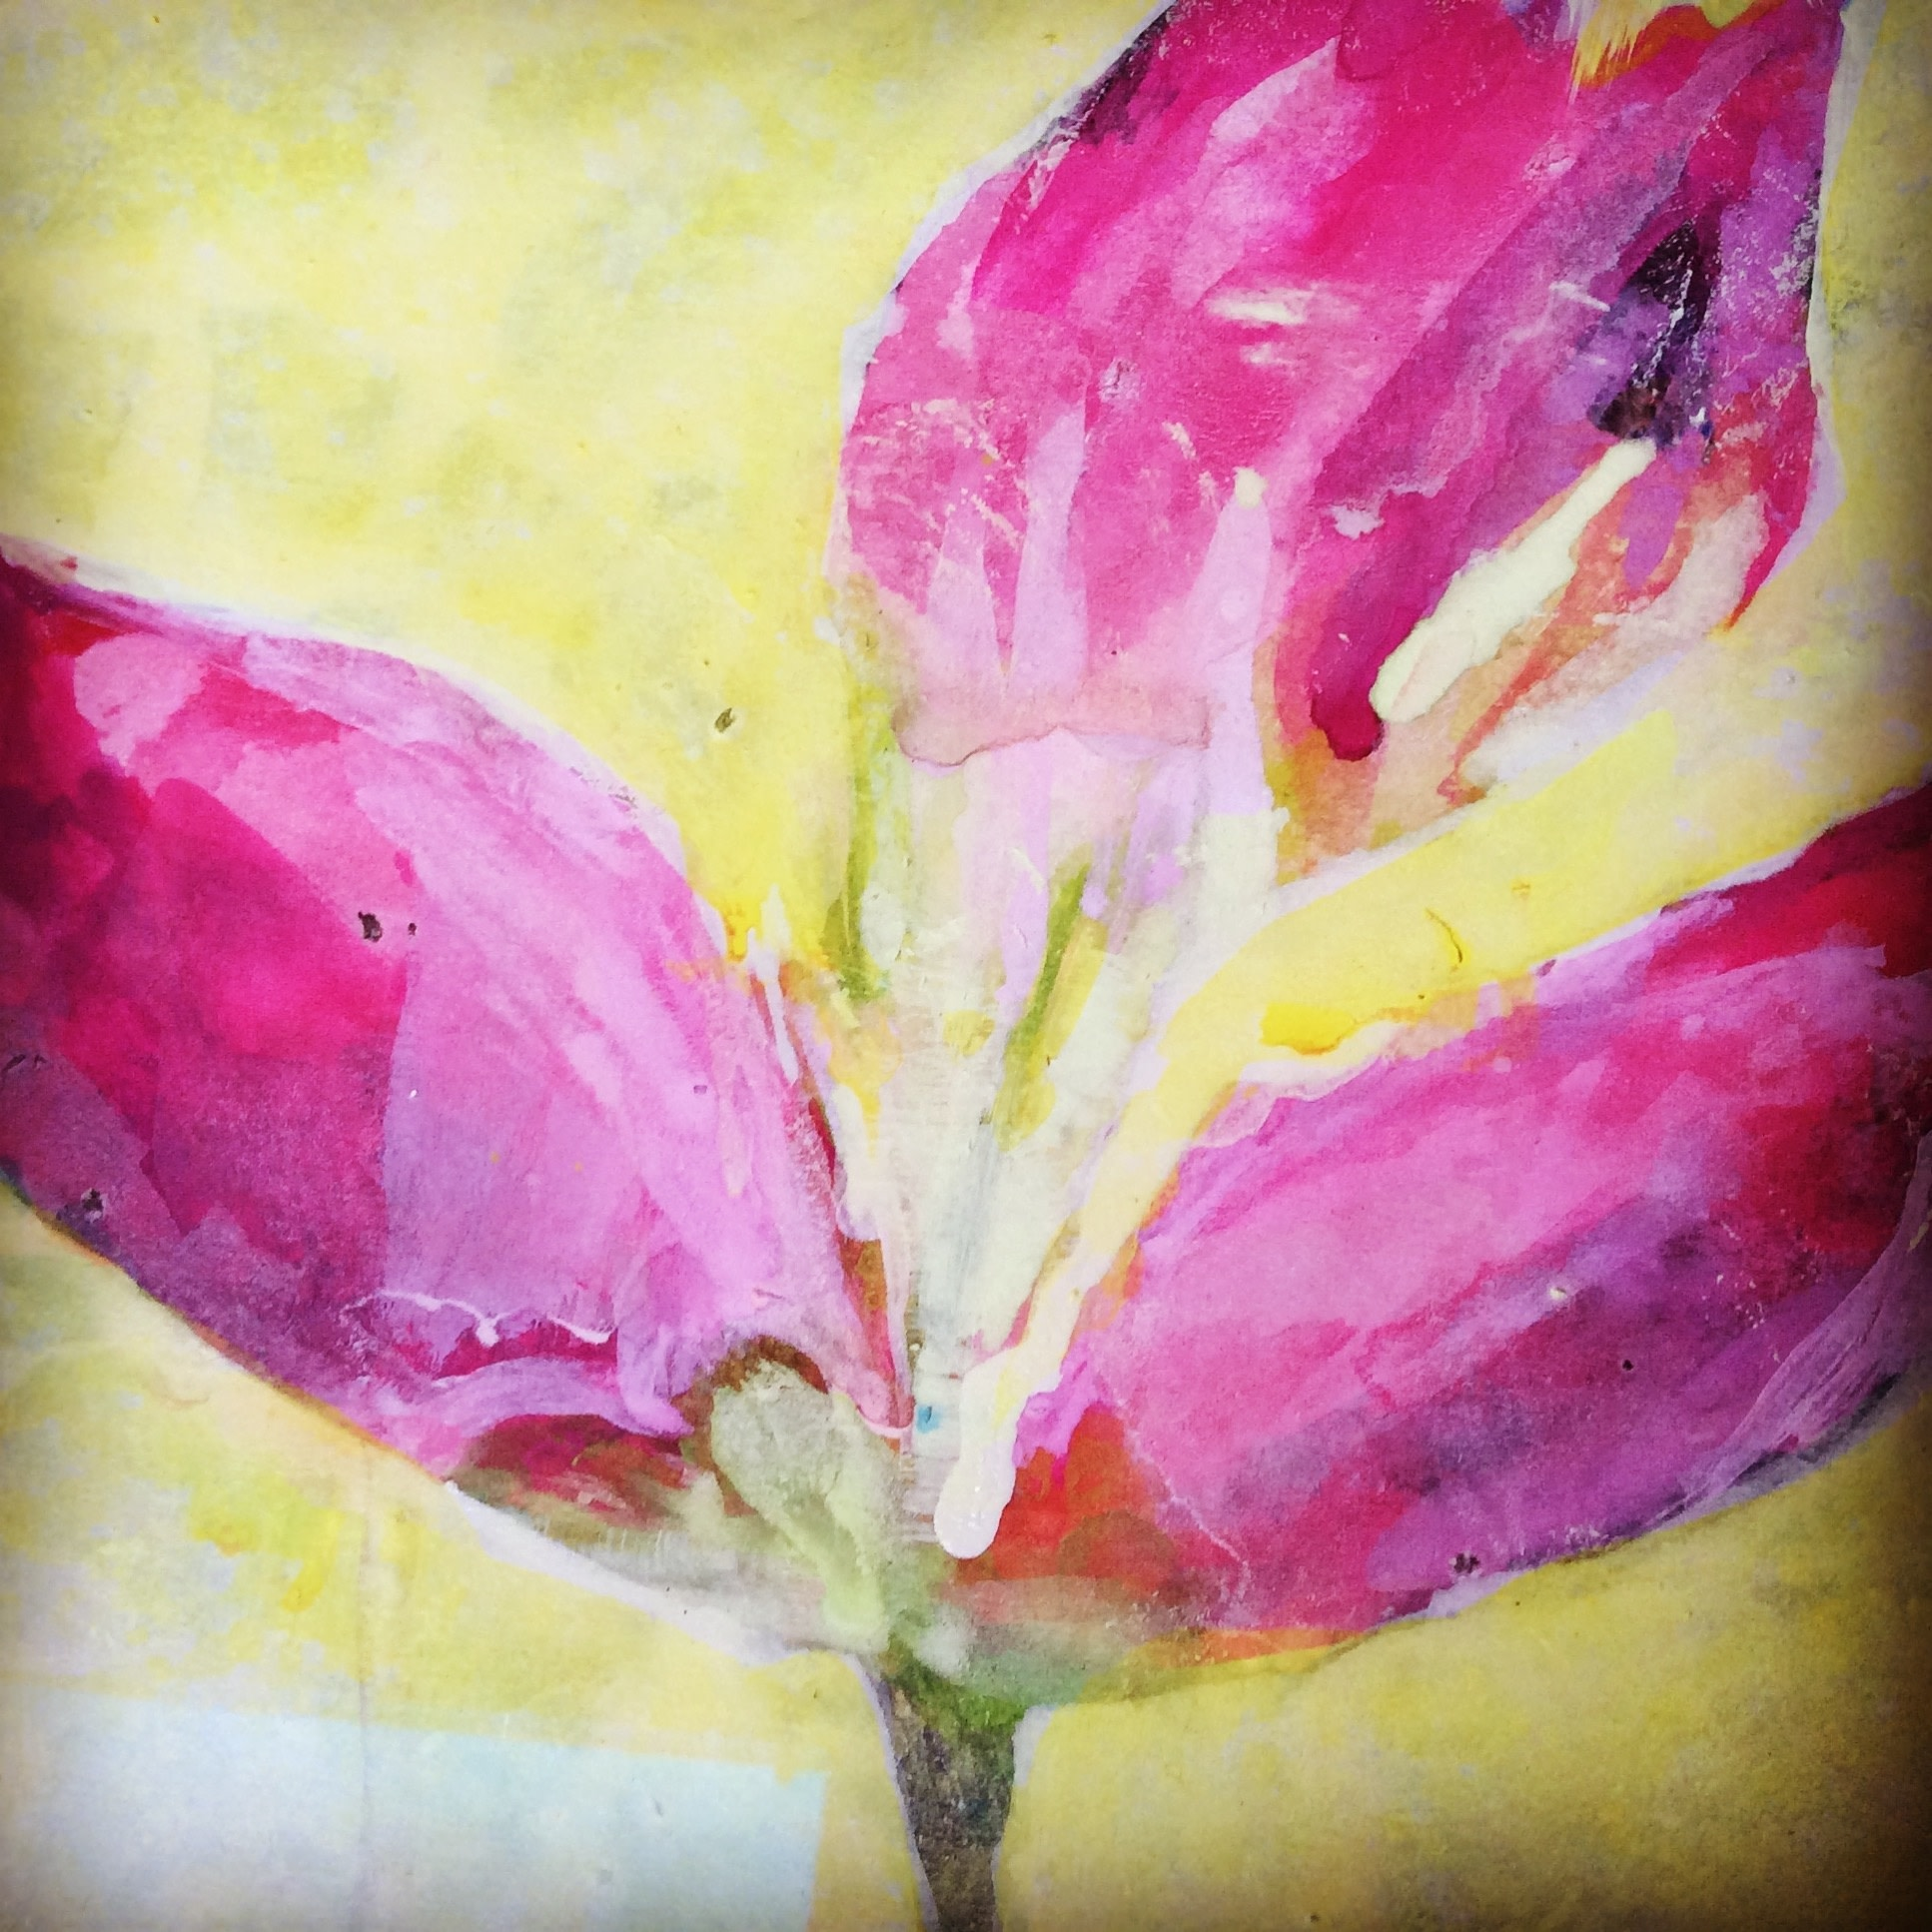 """<span class=""""link fancybox-details-link""""><a href=""""/artists/64-janet-golphin/works/11378-janet-golphin-budding-rhododendrons/"""">View Detail Page</a></span><div class=""""artist""""><span class=""""artist""""><strong>Janet Golphin</strong></span></div><div class=""""title""""><em>Budding Rhododendrons </em></div><div class=""""medium"""">mixed media</div><div class=""""dimensions"""">41x41cm</div><div class=""""price"""">£450.00</div>"""